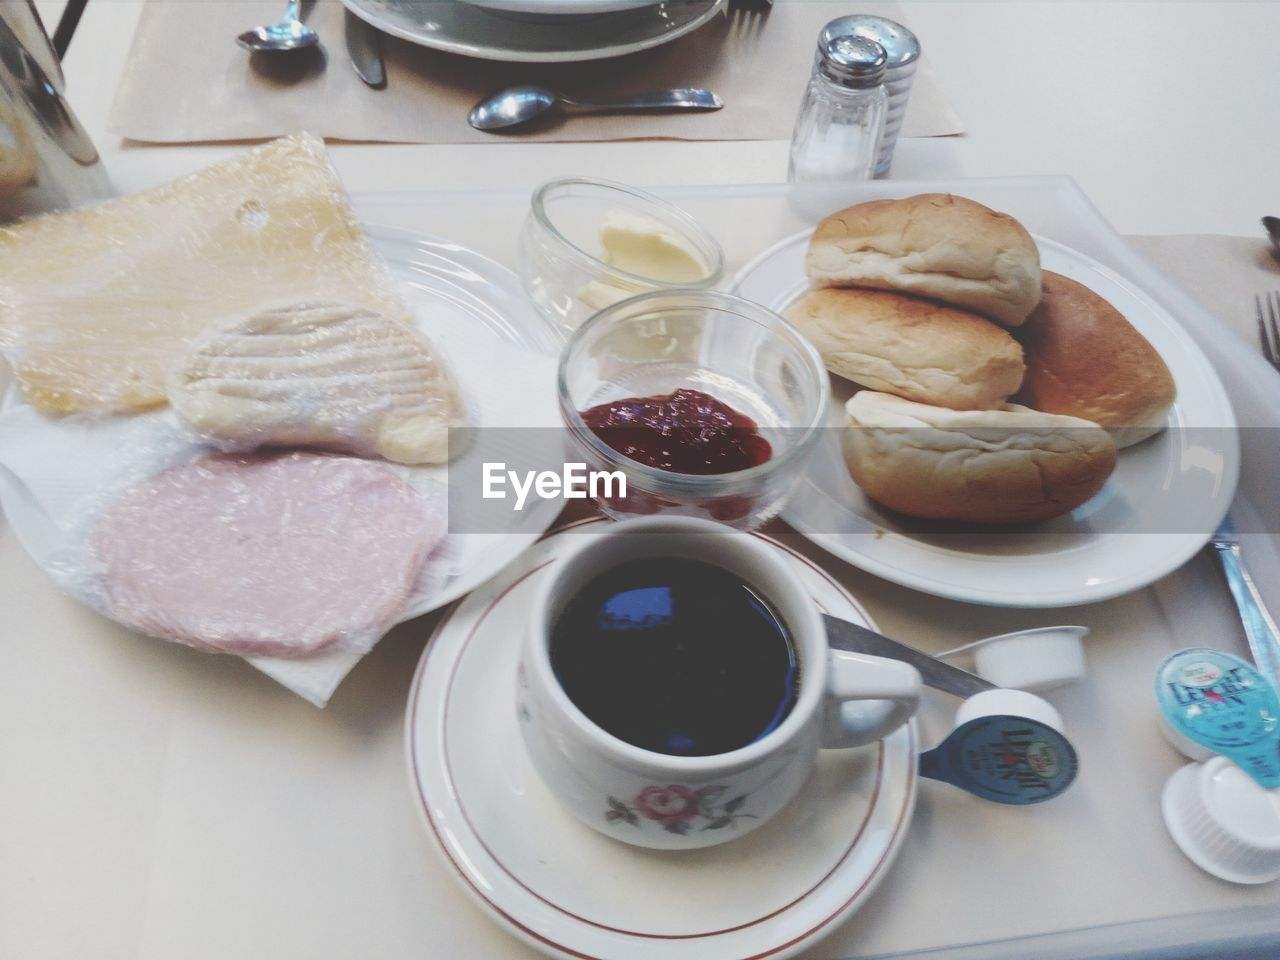 food and drink, food, breakfast, coffee cup, plate, coffee - drink, freshness, table, drink, serving size, indoors, bread, no people, healthy eating, ready-to-eat, close-up, day